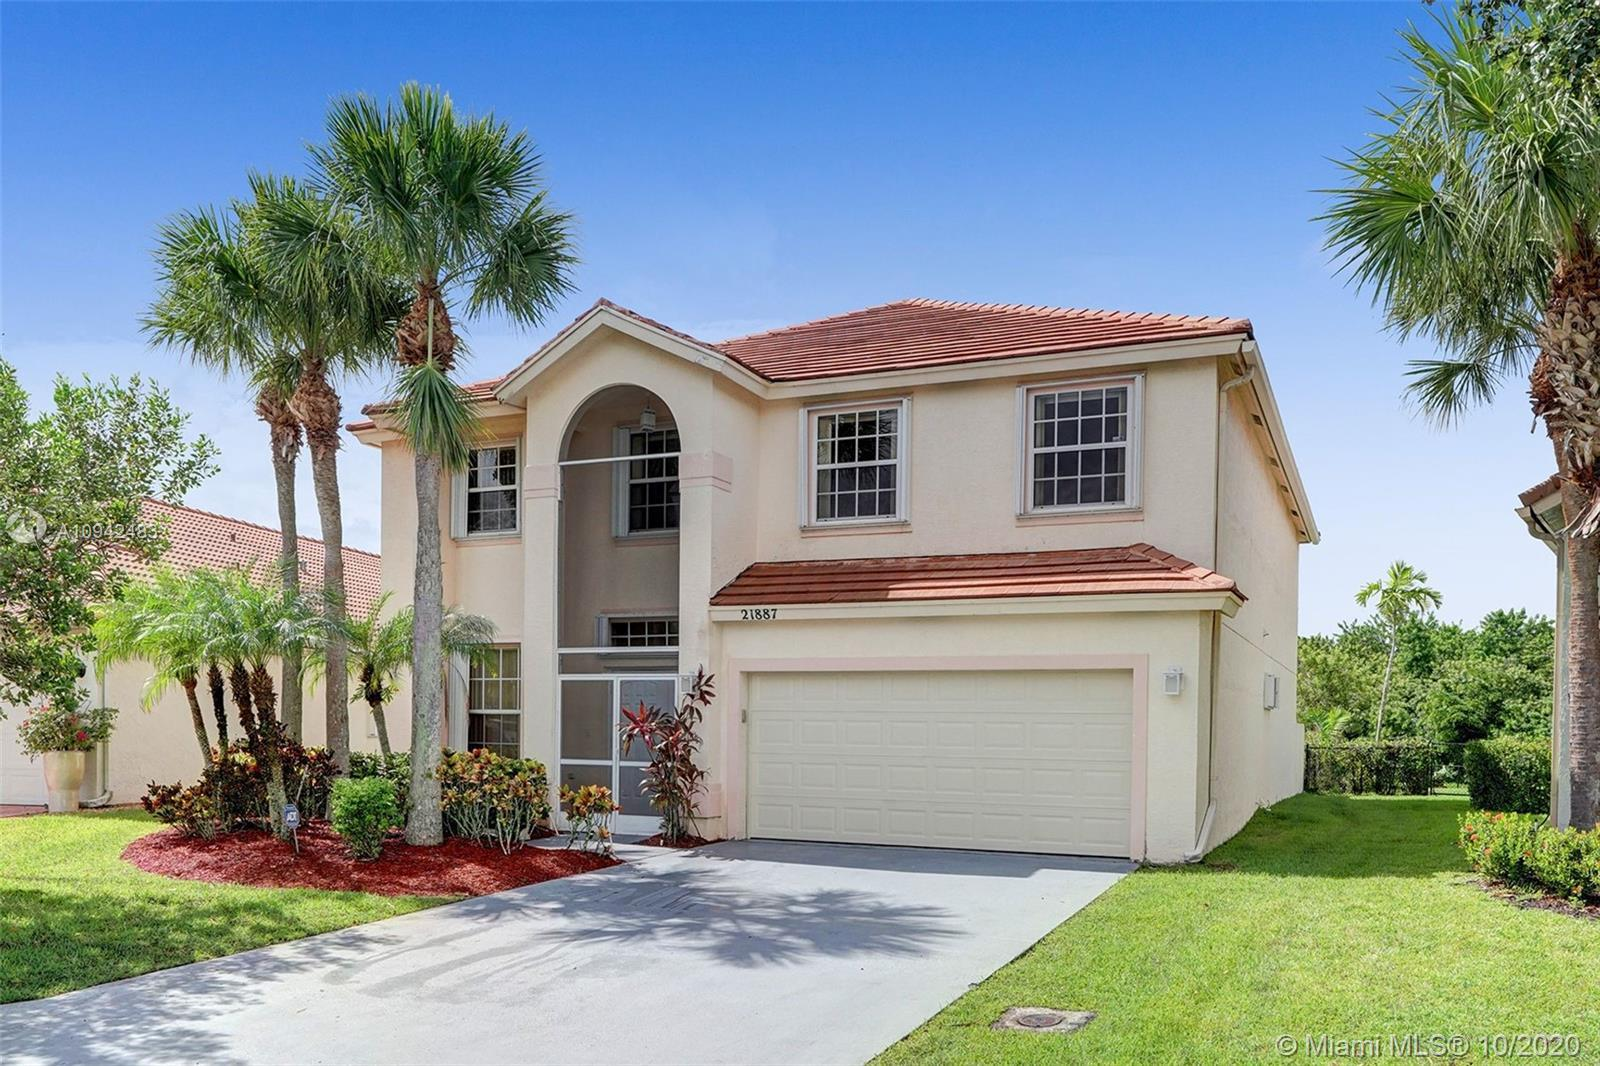 A rare 5 bedroom house available in highly desired Monterey Bay in Boca Winds! Enjoy a HUGE backyard